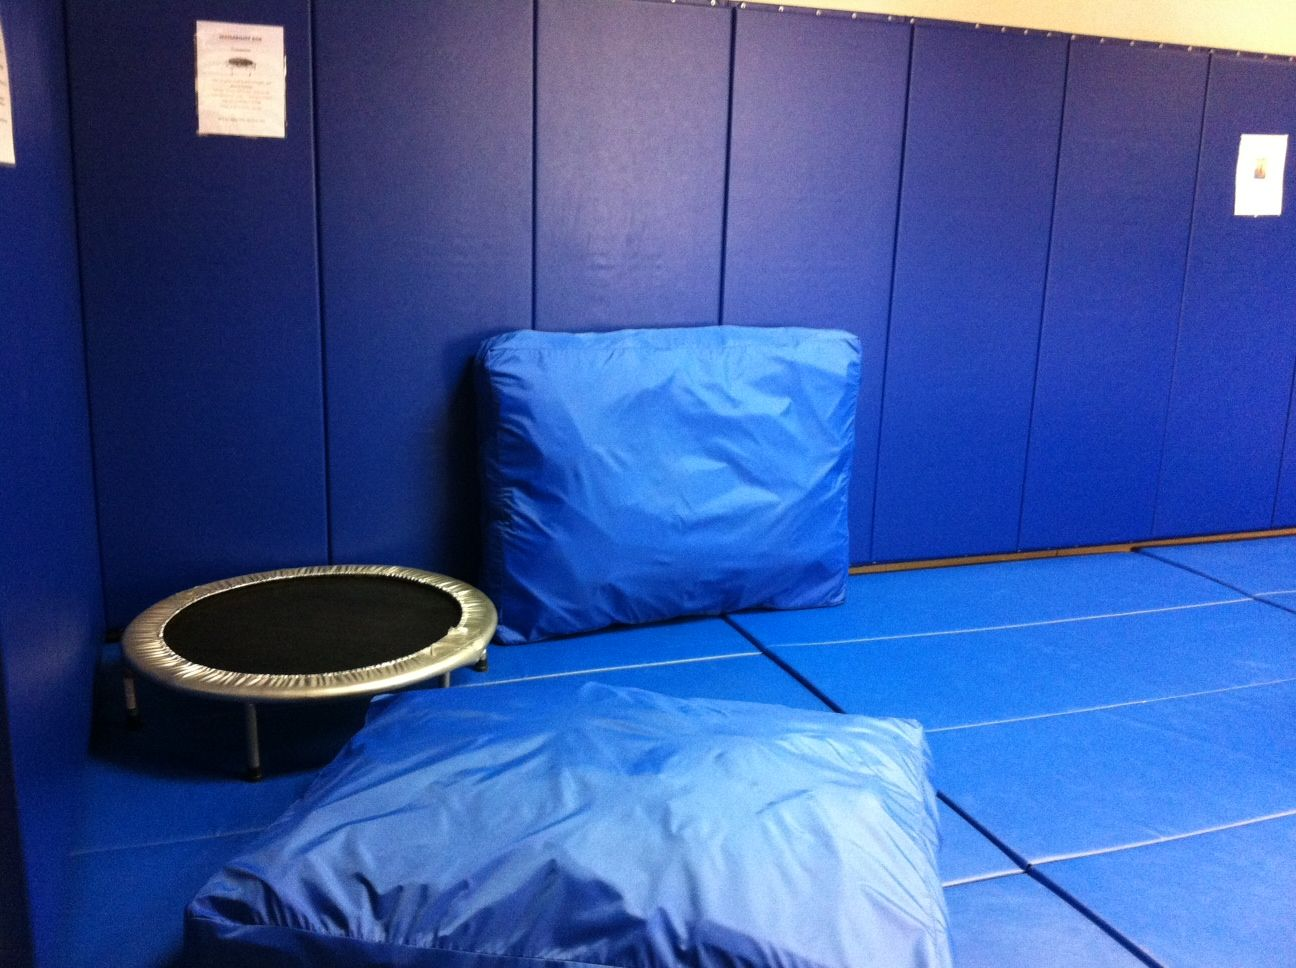 Trampolines And Crash Pads Are Great For Sensory Seekers And The Walls And Floor Are Padded For Safety Gym Pictures Wall Sensory Seeker